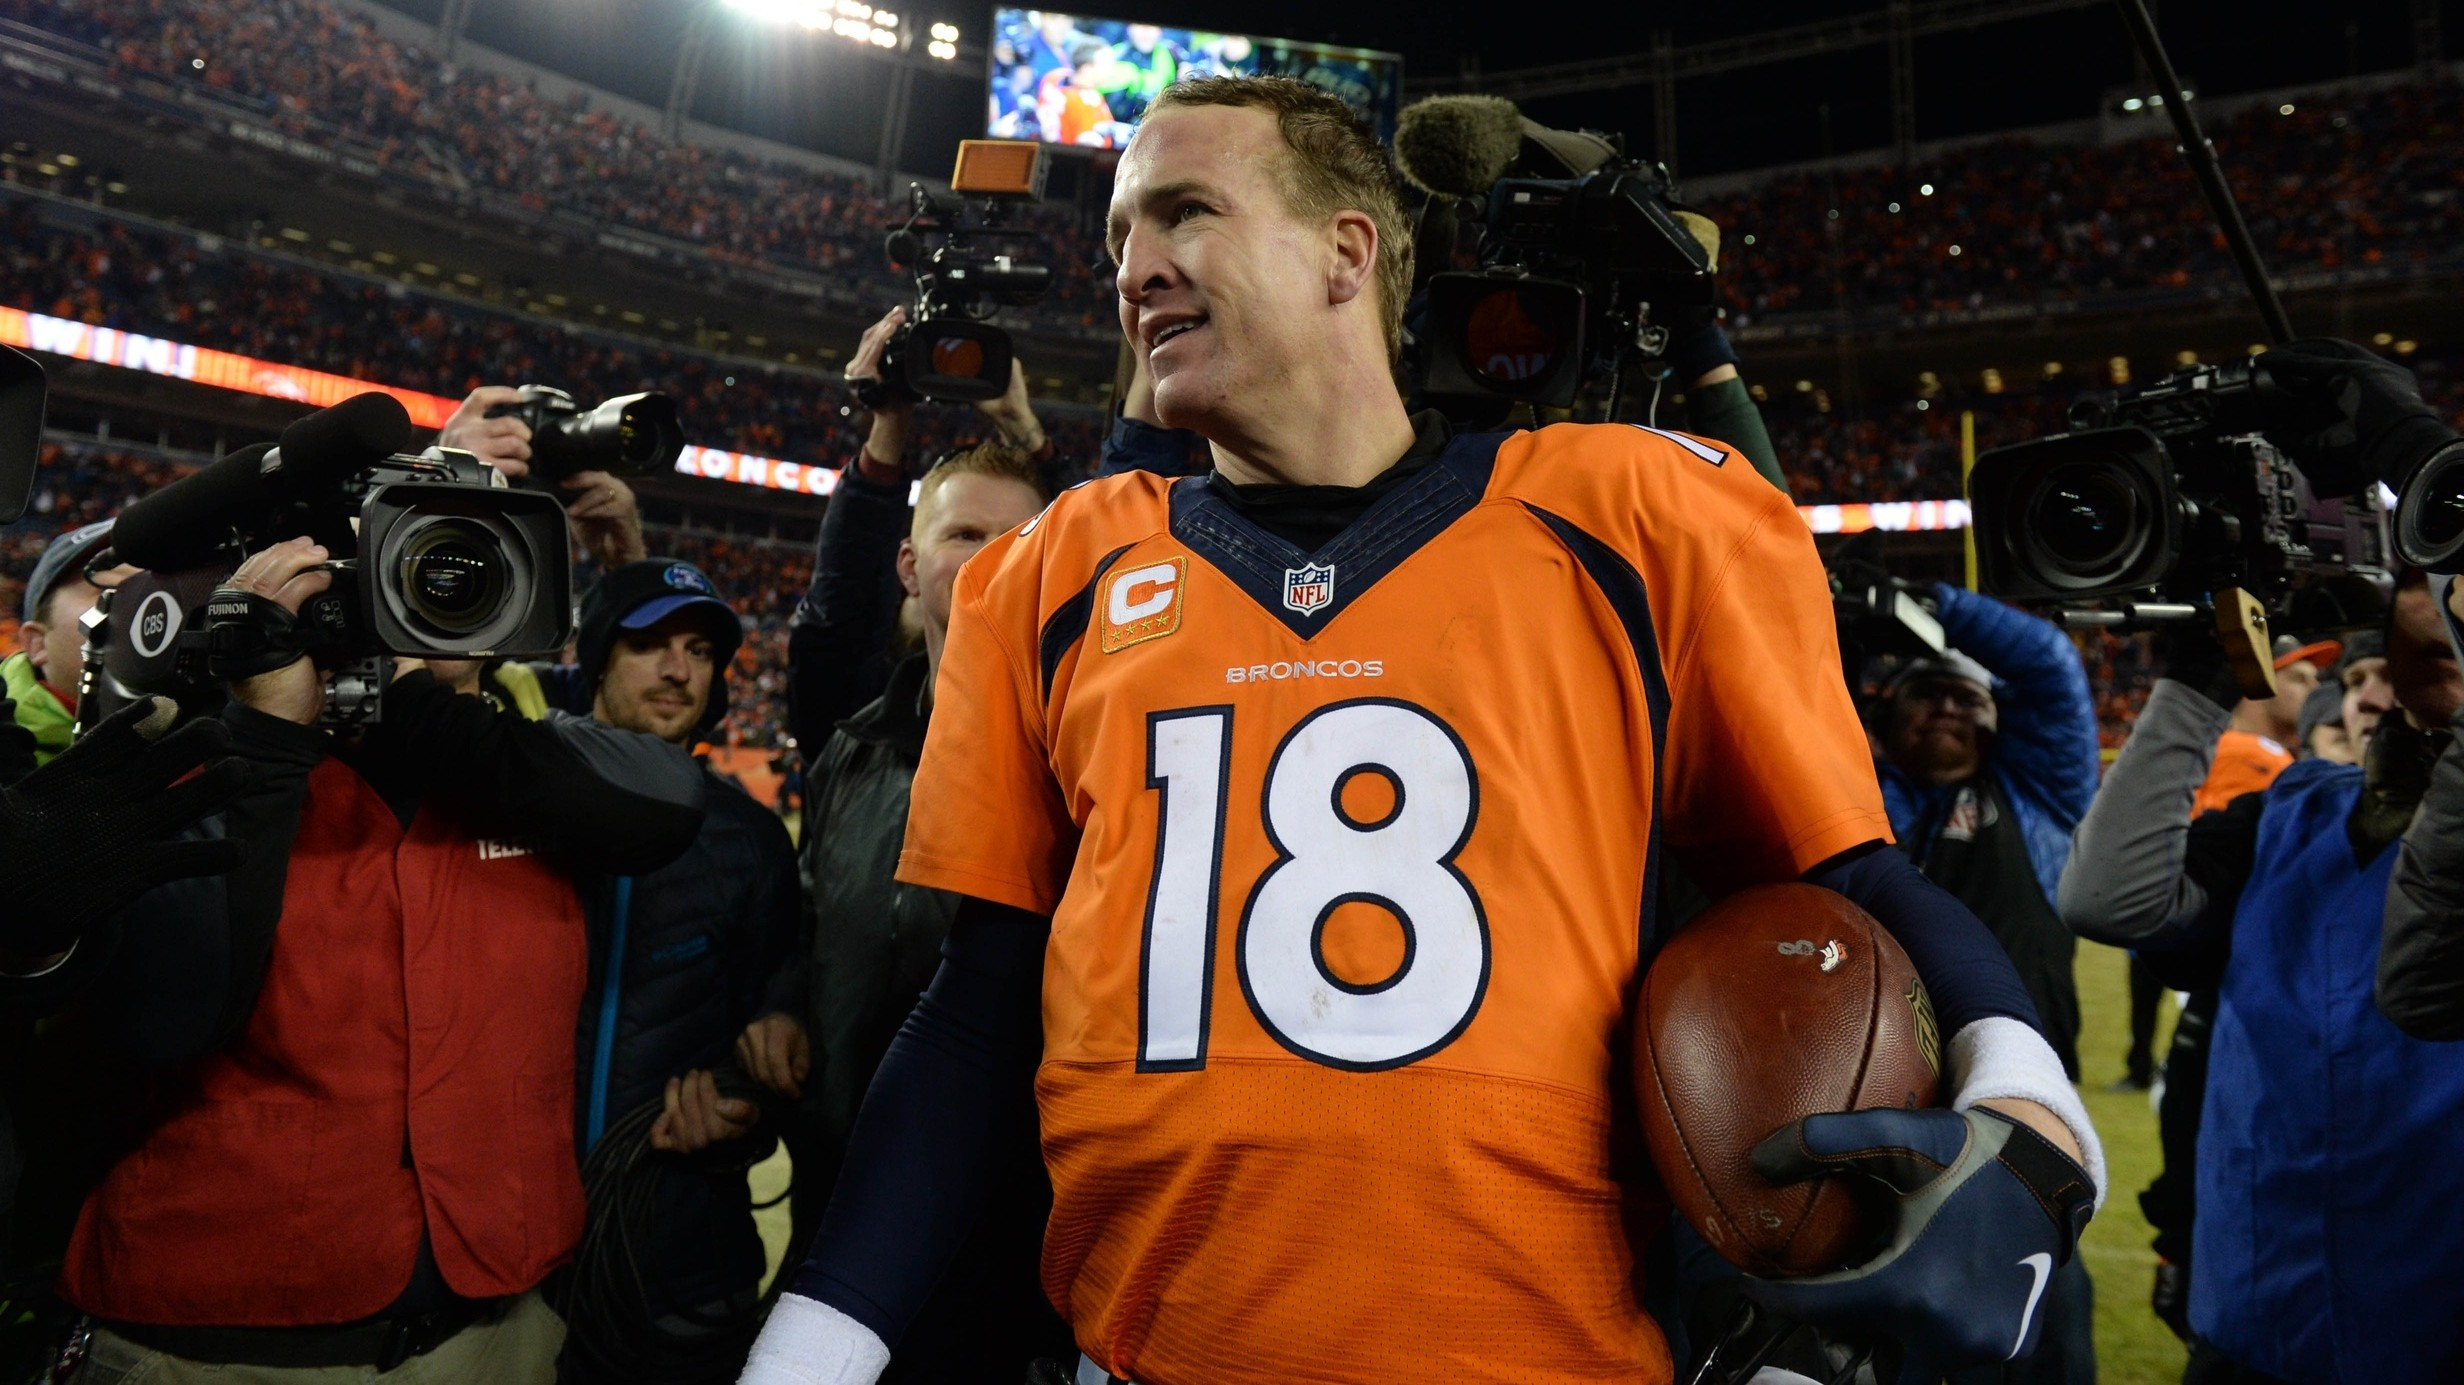 Baseball Players Sue Al Jazeera, Peyton Manning Also Seriously Considering Lawsuit